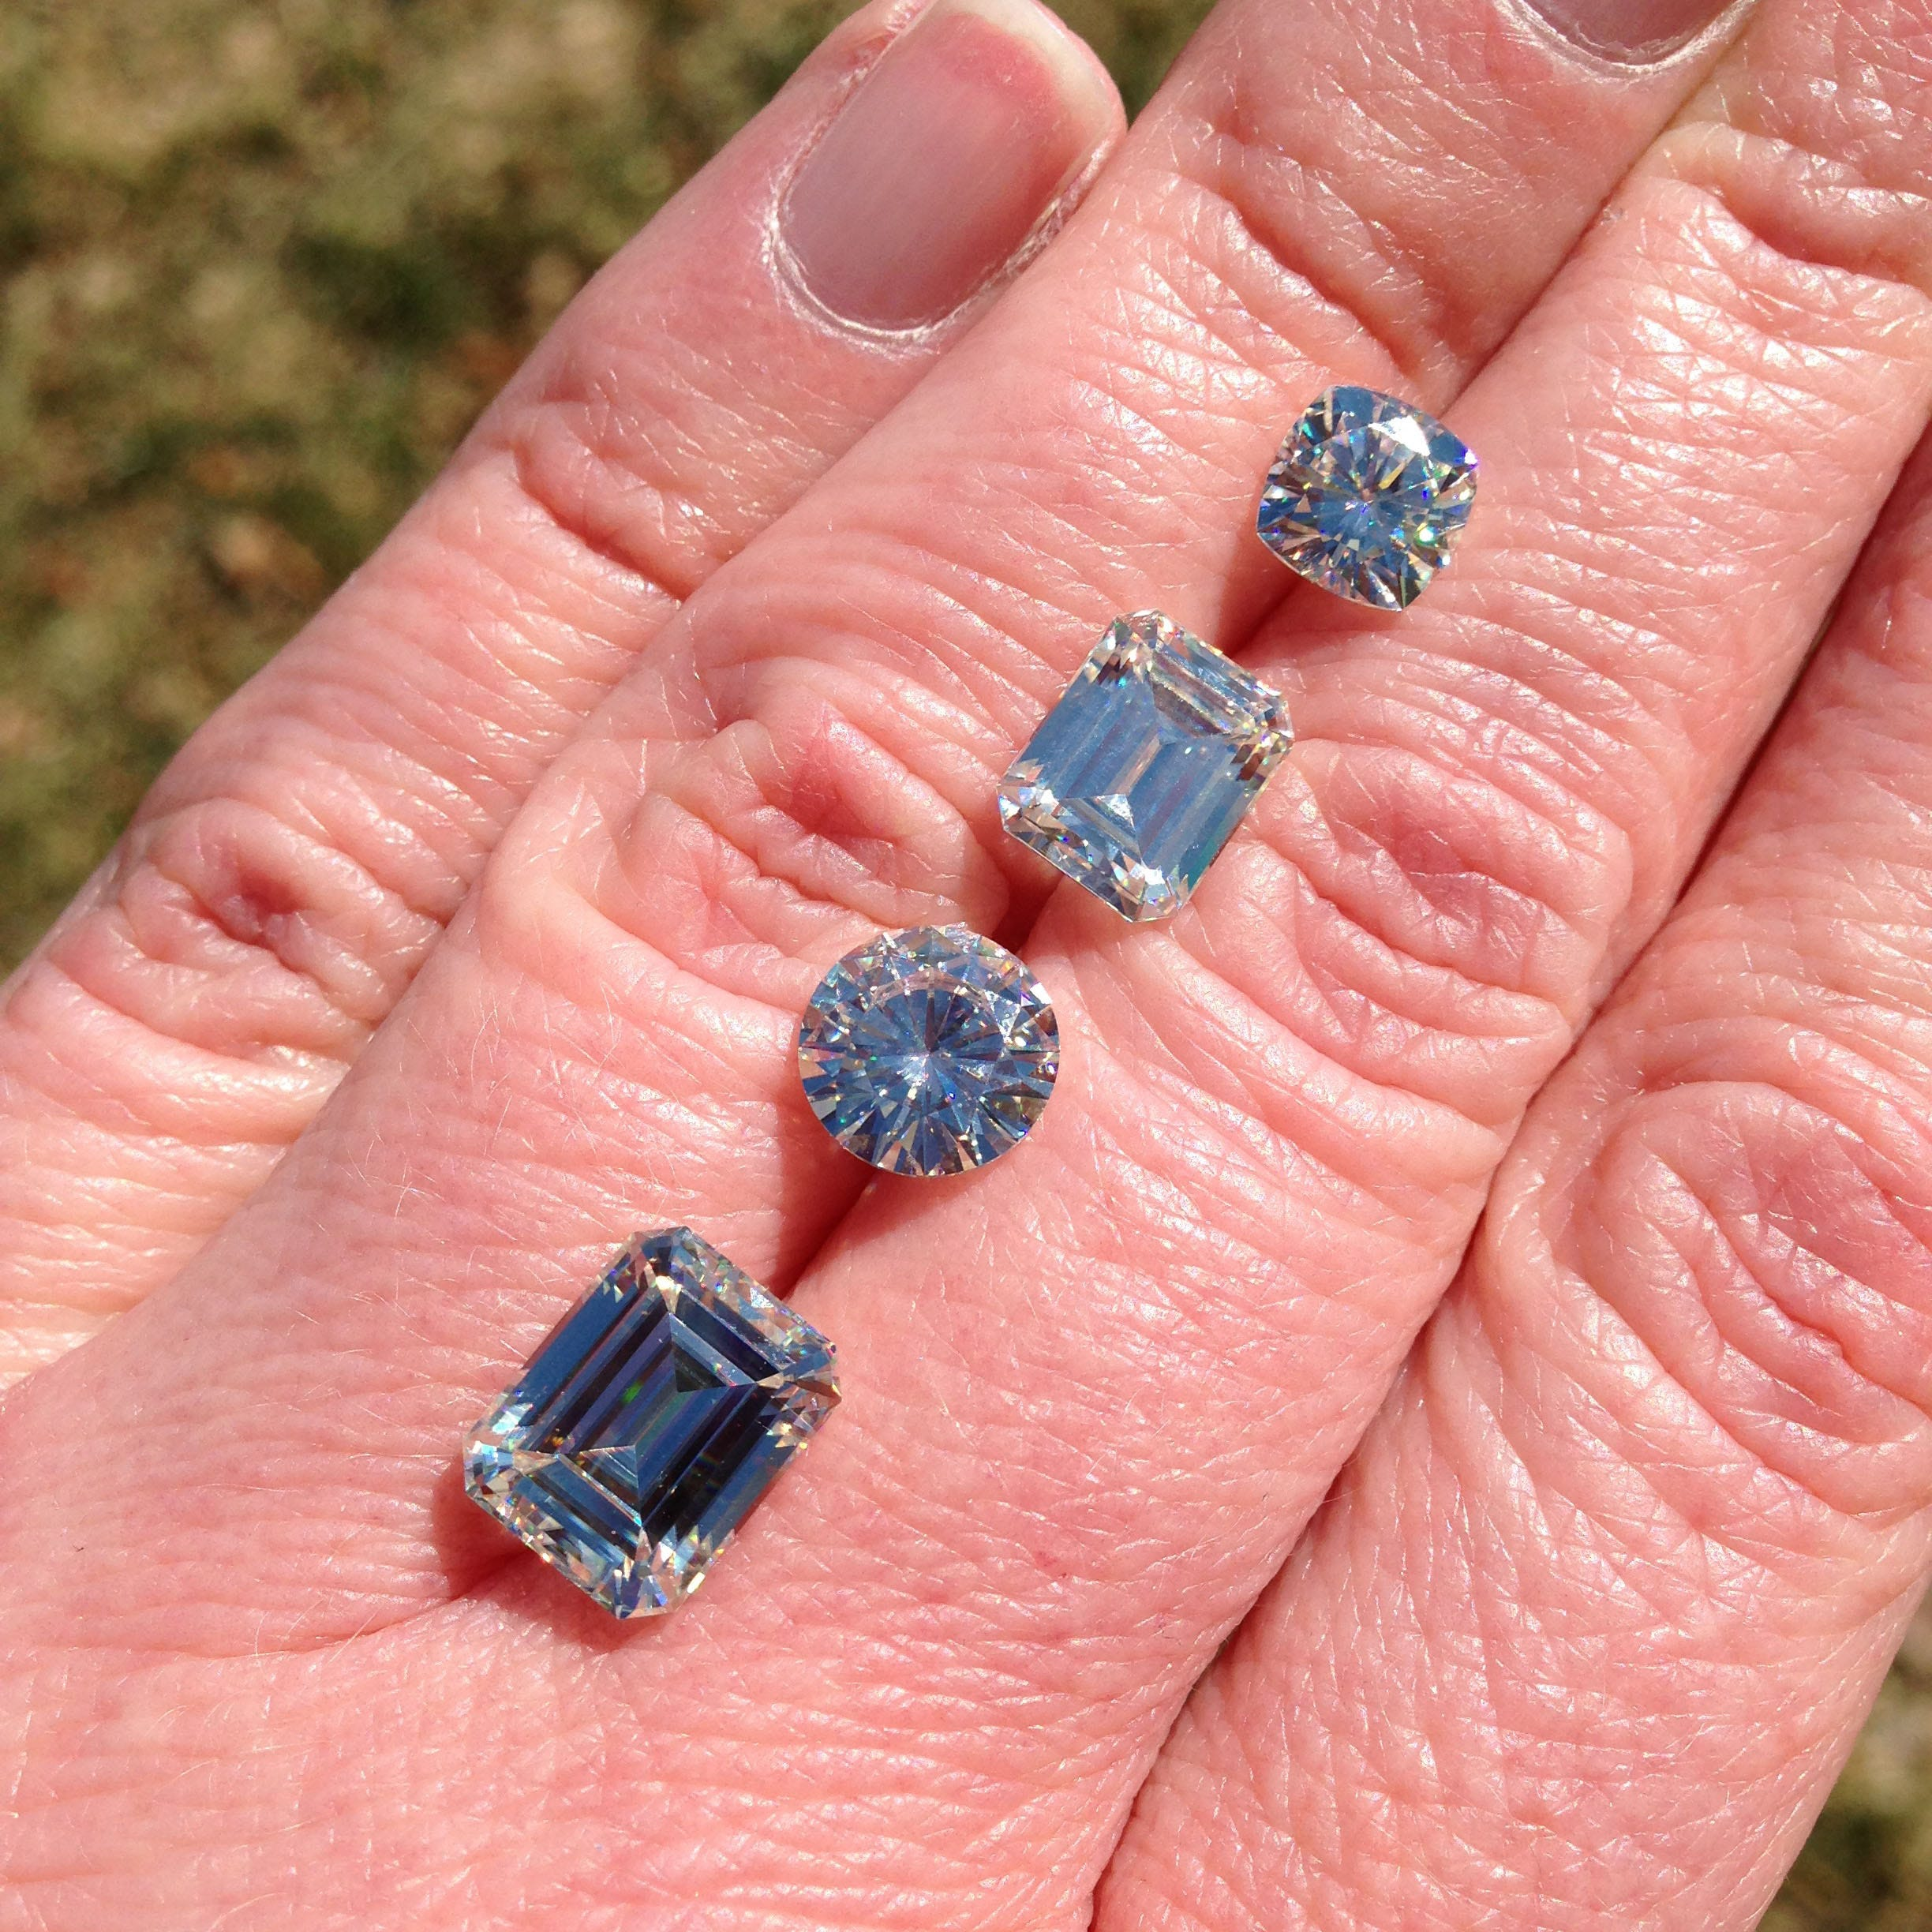 The Charles And Colvard Blog - Moissanite Jewelry Trends And Designs